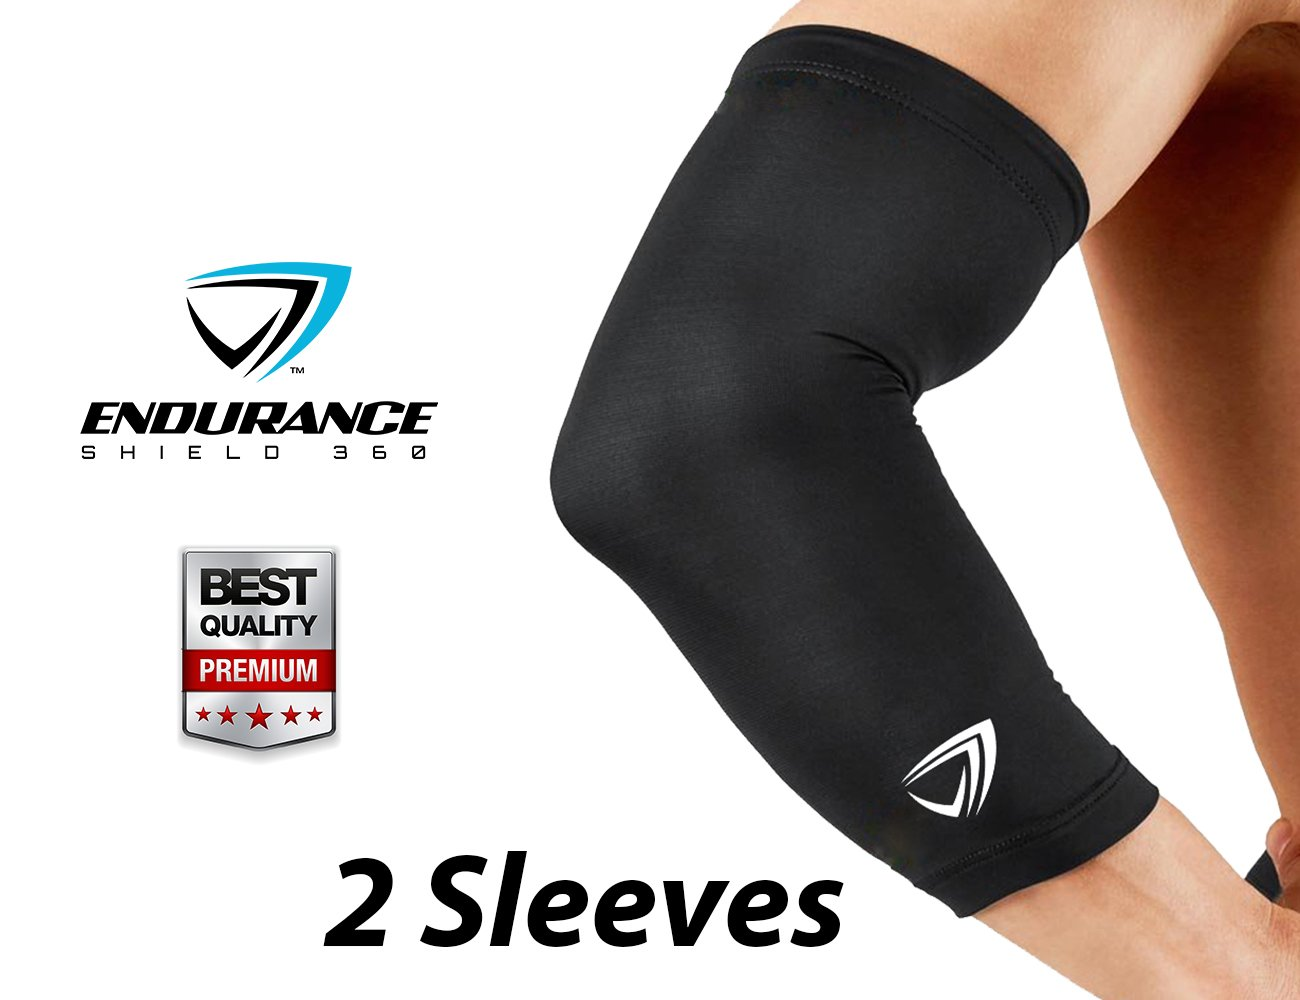 Fitness & Body Building Running Fitness 1 Pair Elbow Support Compression Sleeve Elbow Brace Protector For Workouts Weightlifting Arm Brace Th Hot Yoga